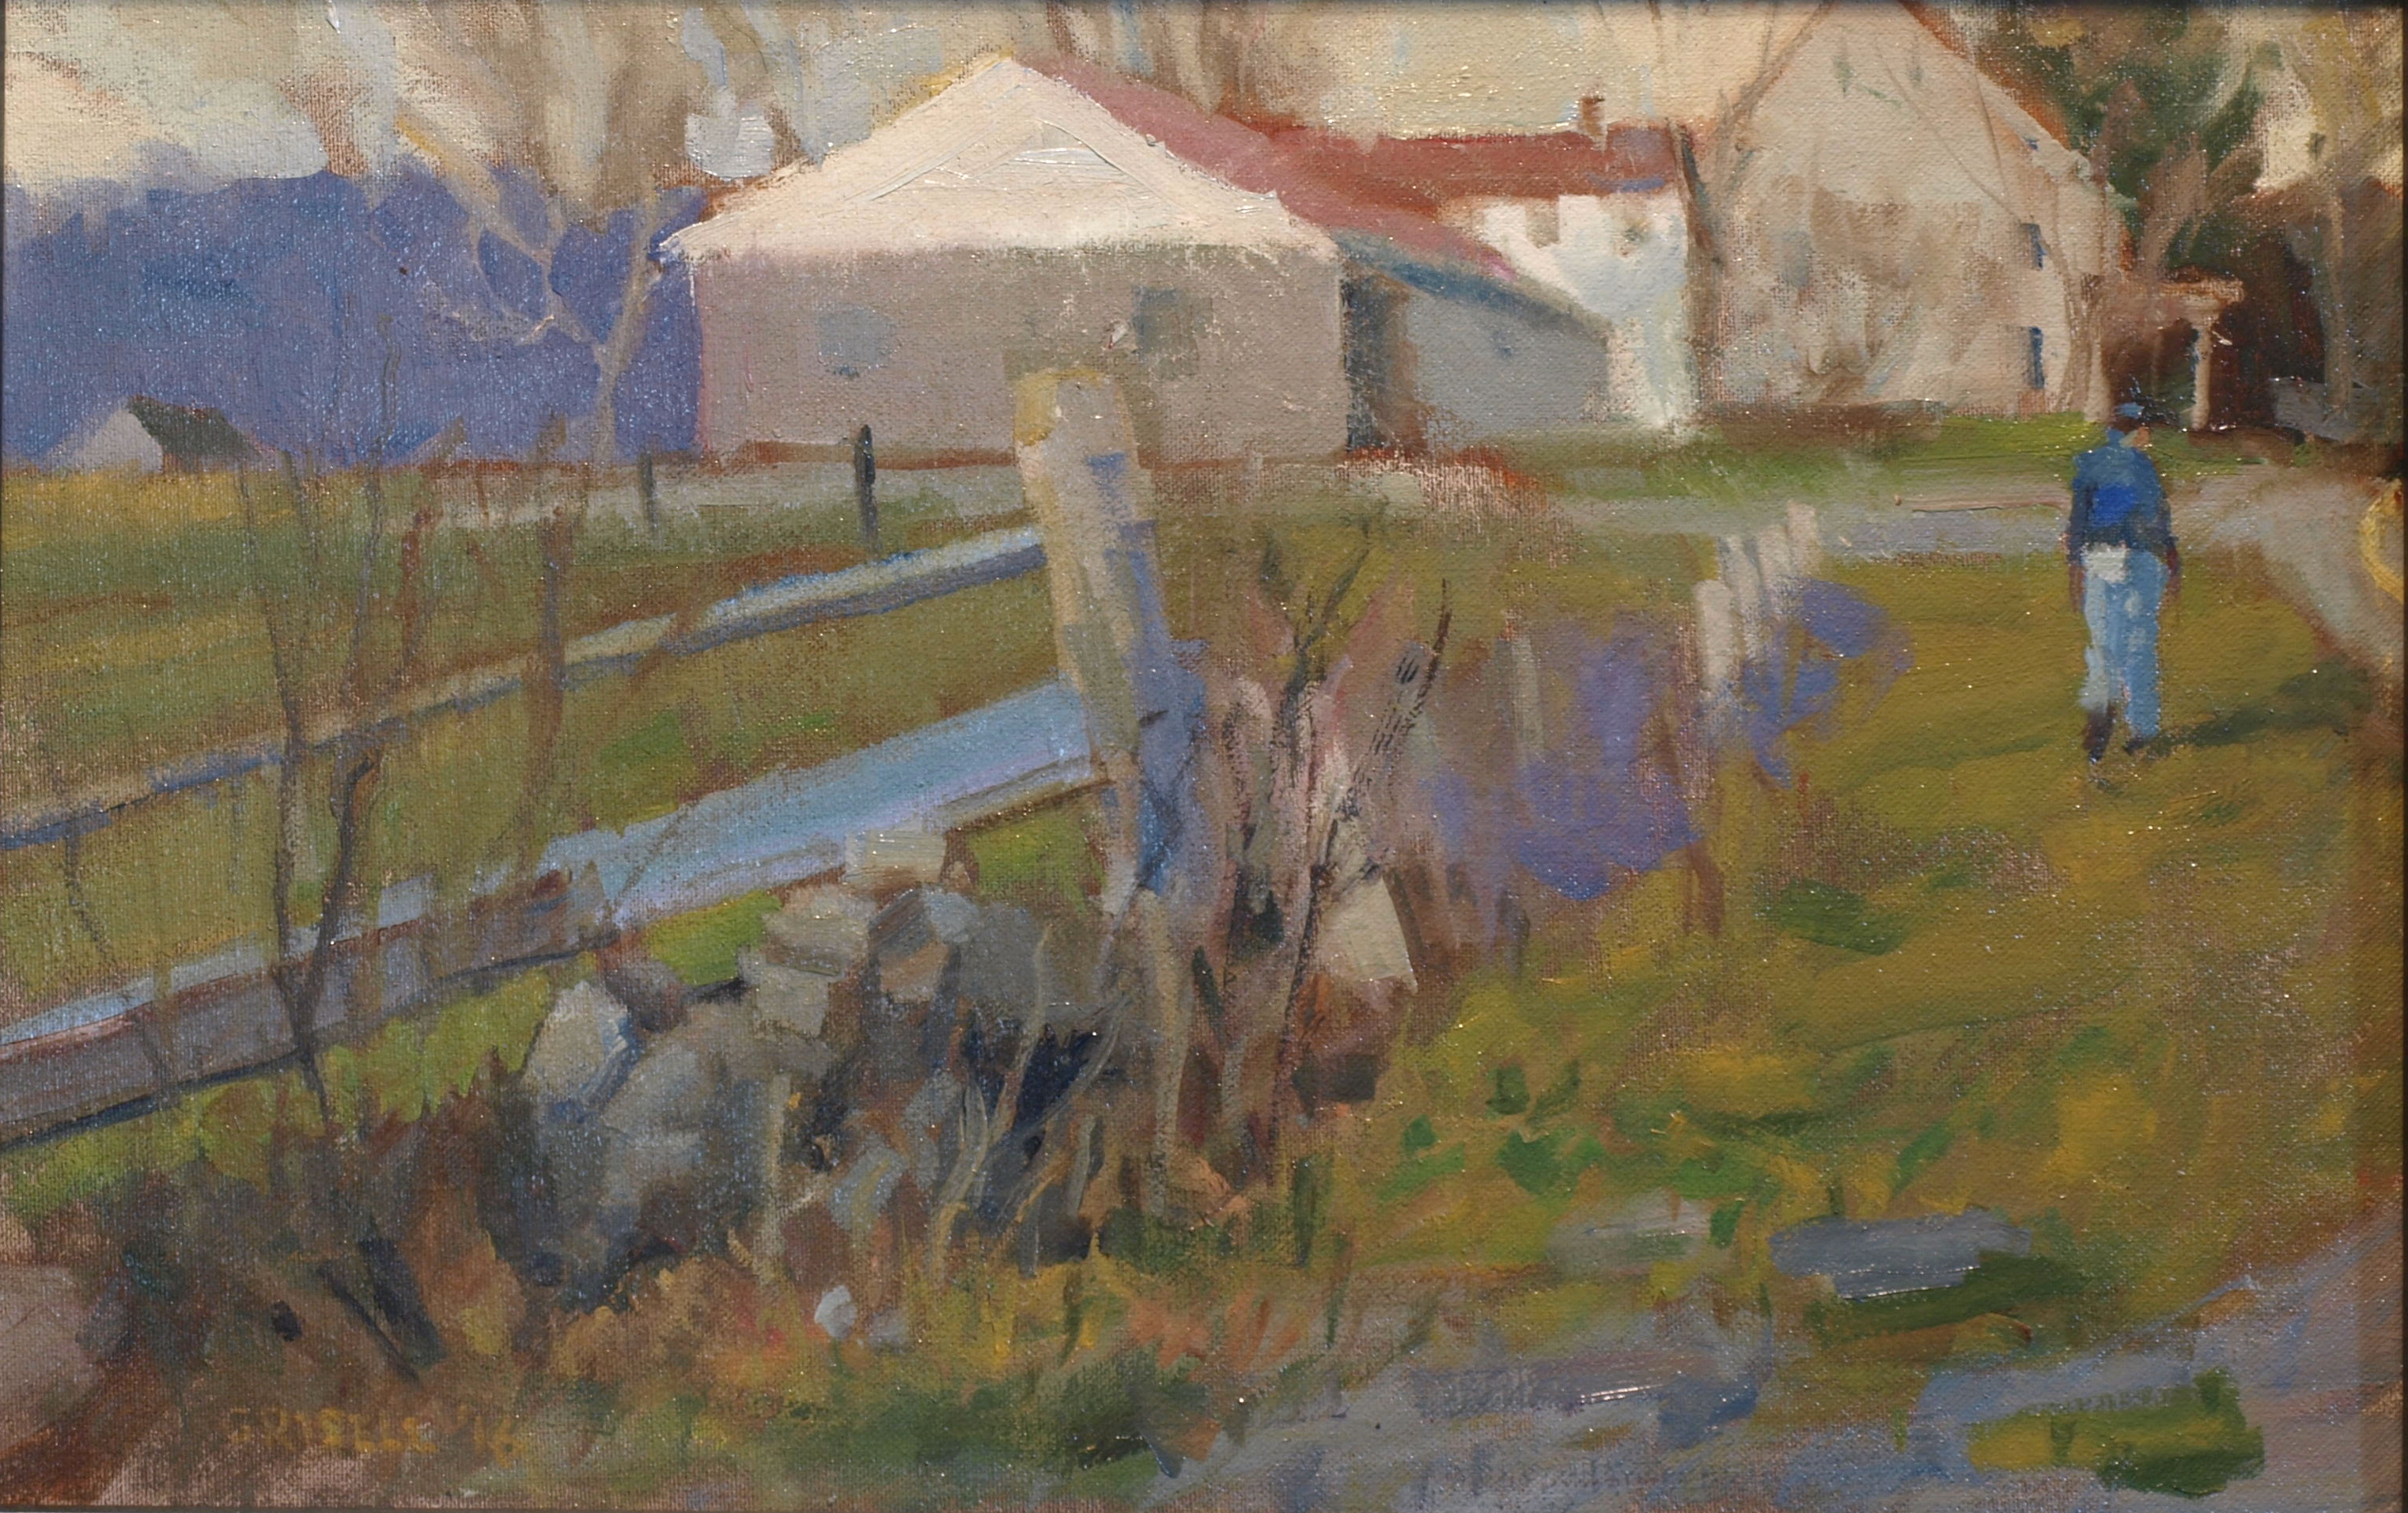 Farmhouse Warren, Oil on Canvas on Panel, 12 x 18 Inches, by Susan Grisell, $315